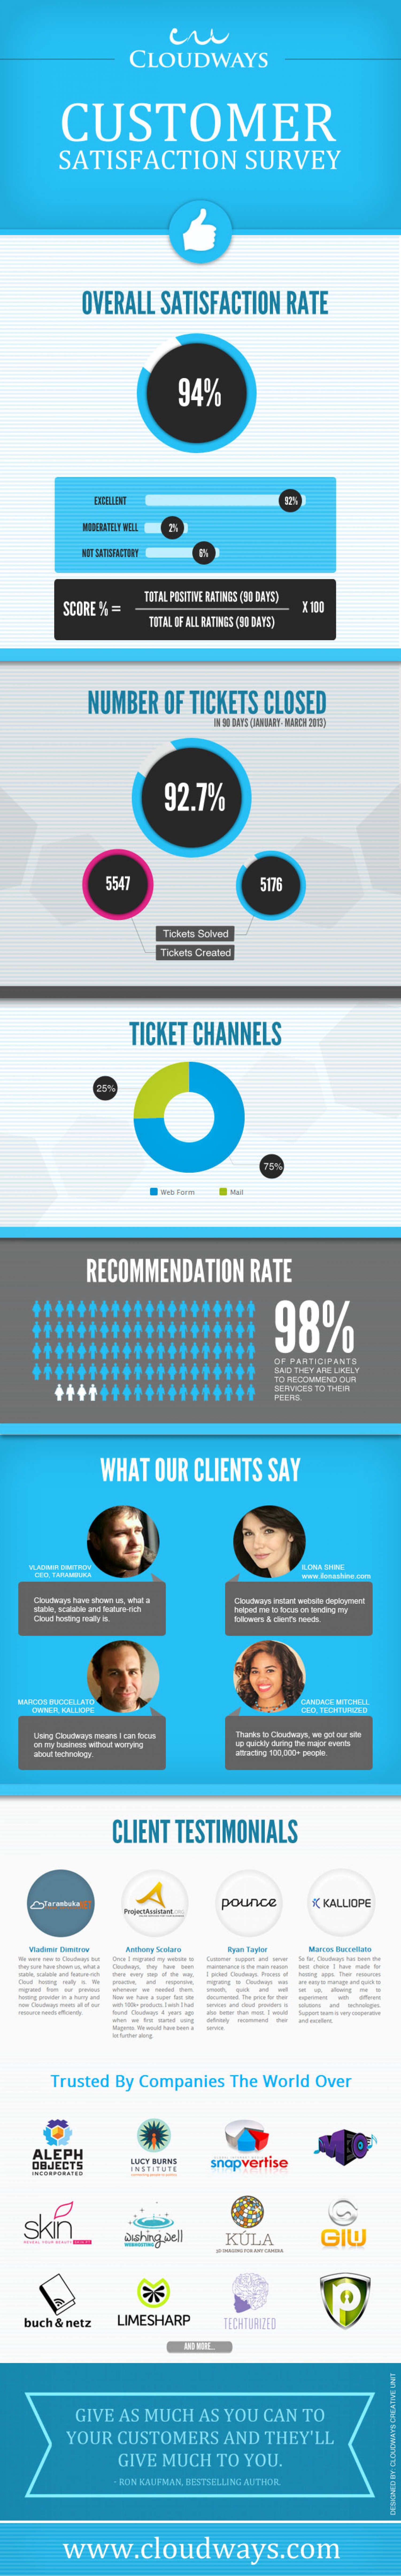 Cloudways Client Satisfaction Survey - 94% Satisfaction Rate Infographic